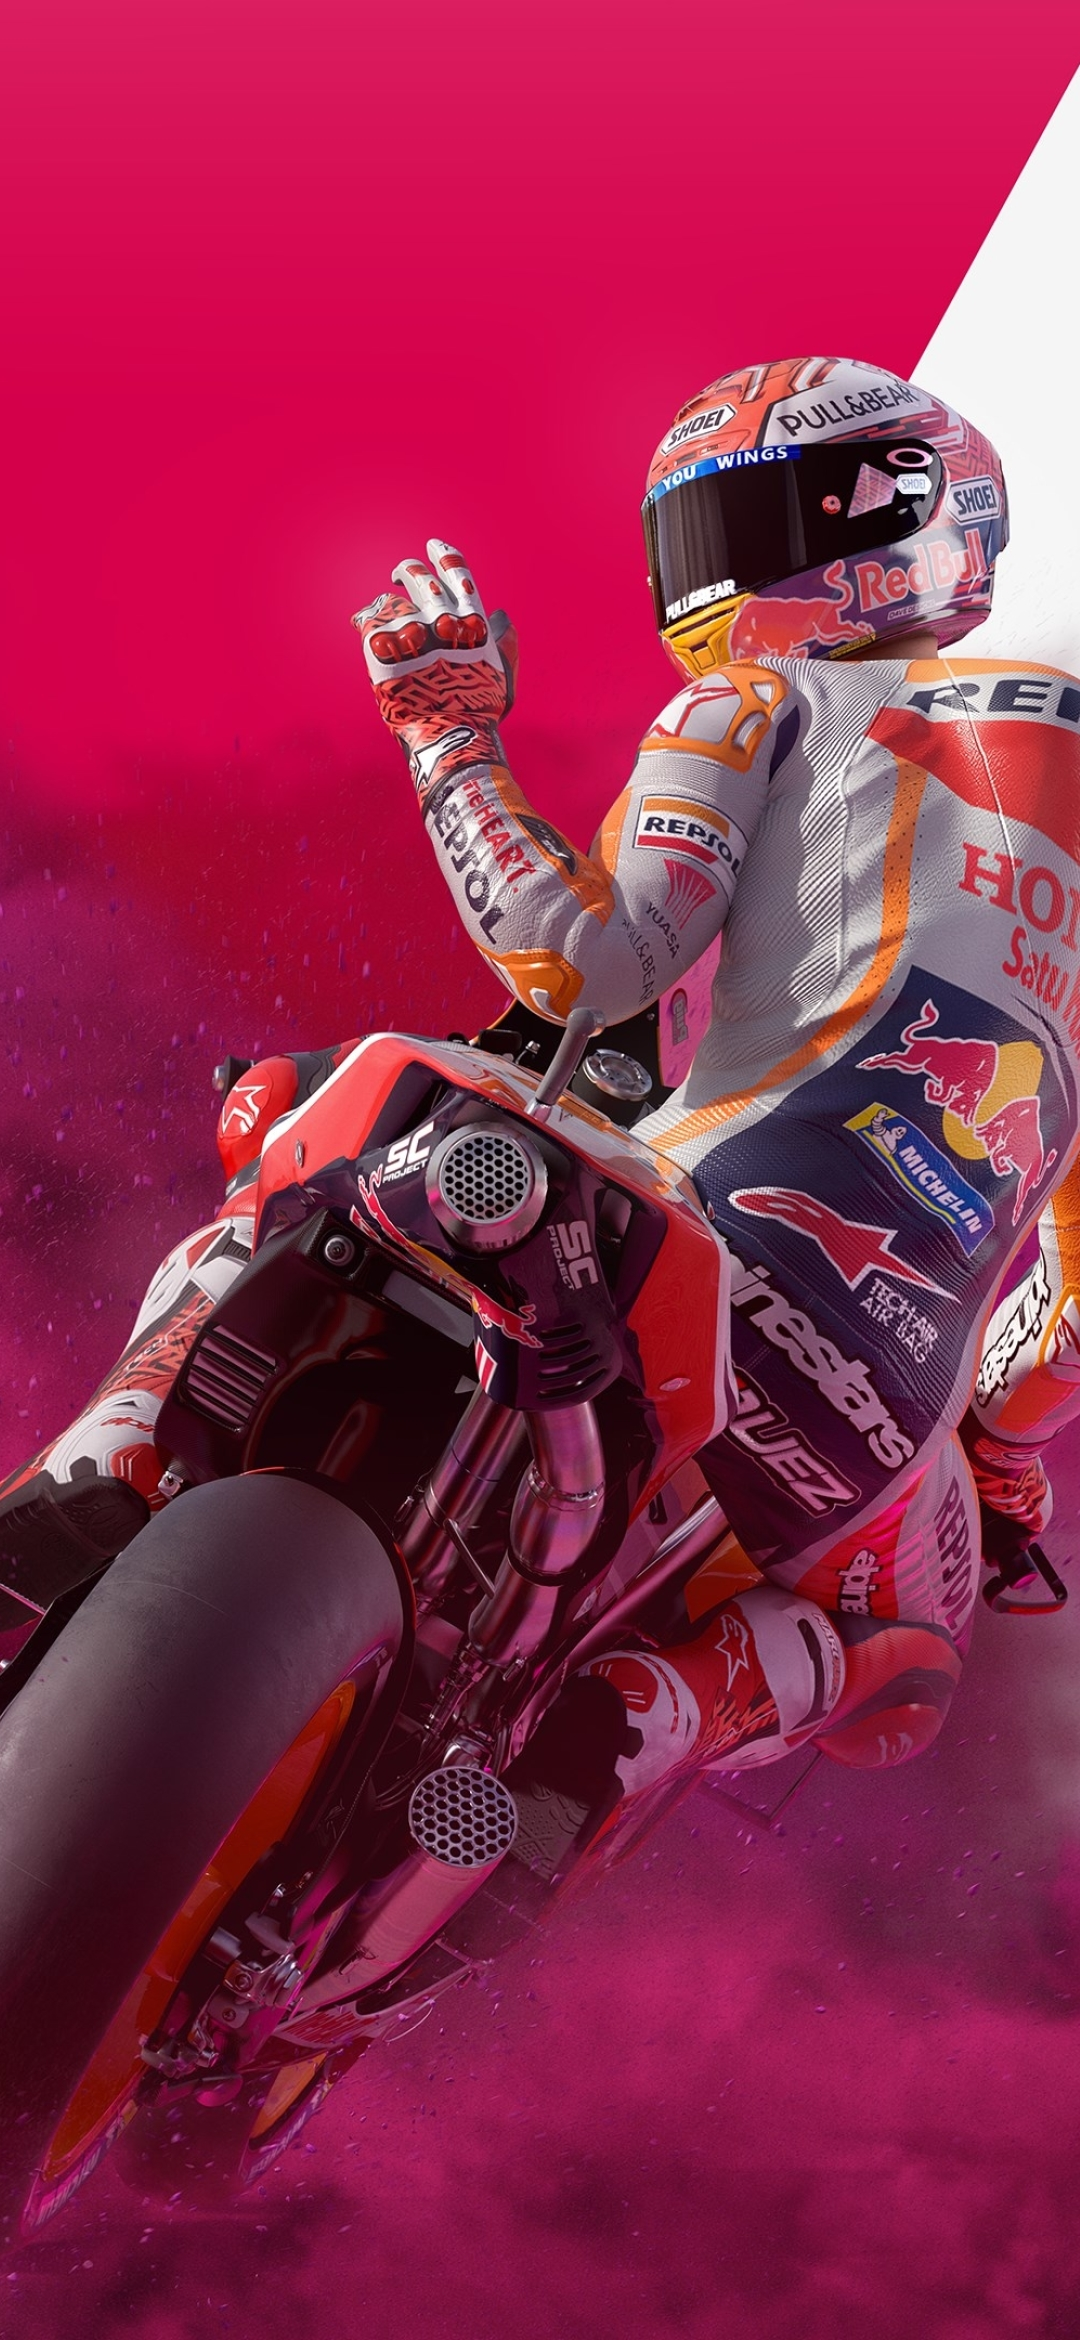 1080x2340 Motogp 19 Game 1080x2340 Resolution Wallpaper Hd Games 4k Wallpapers Images Photos And Background